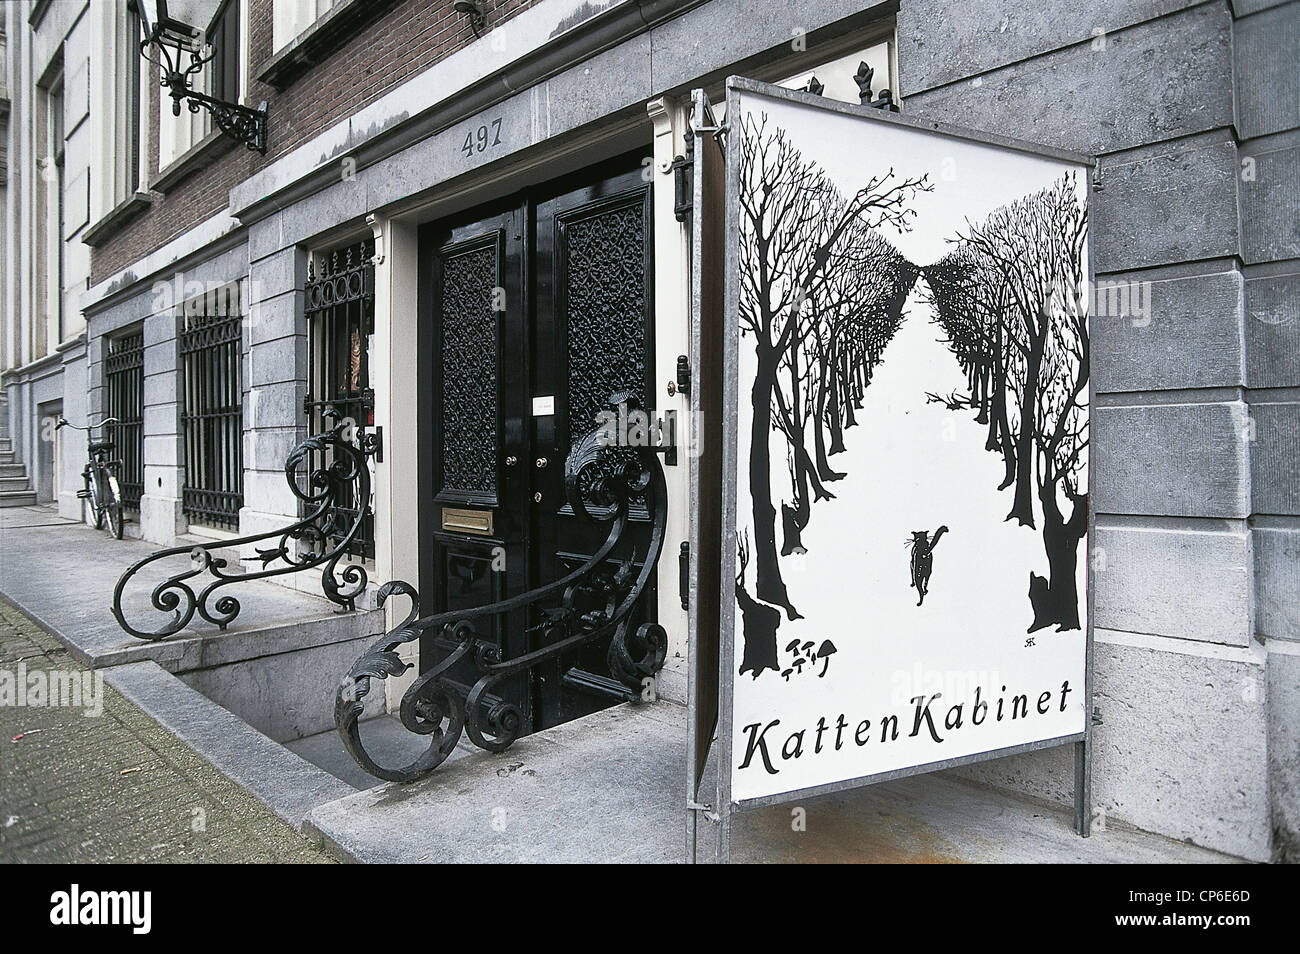 AMSTERDAM, Netherlands Heren Gracht Kattenkabinet MUSEUM OF THE CAT ENTRANCE - Stock Image